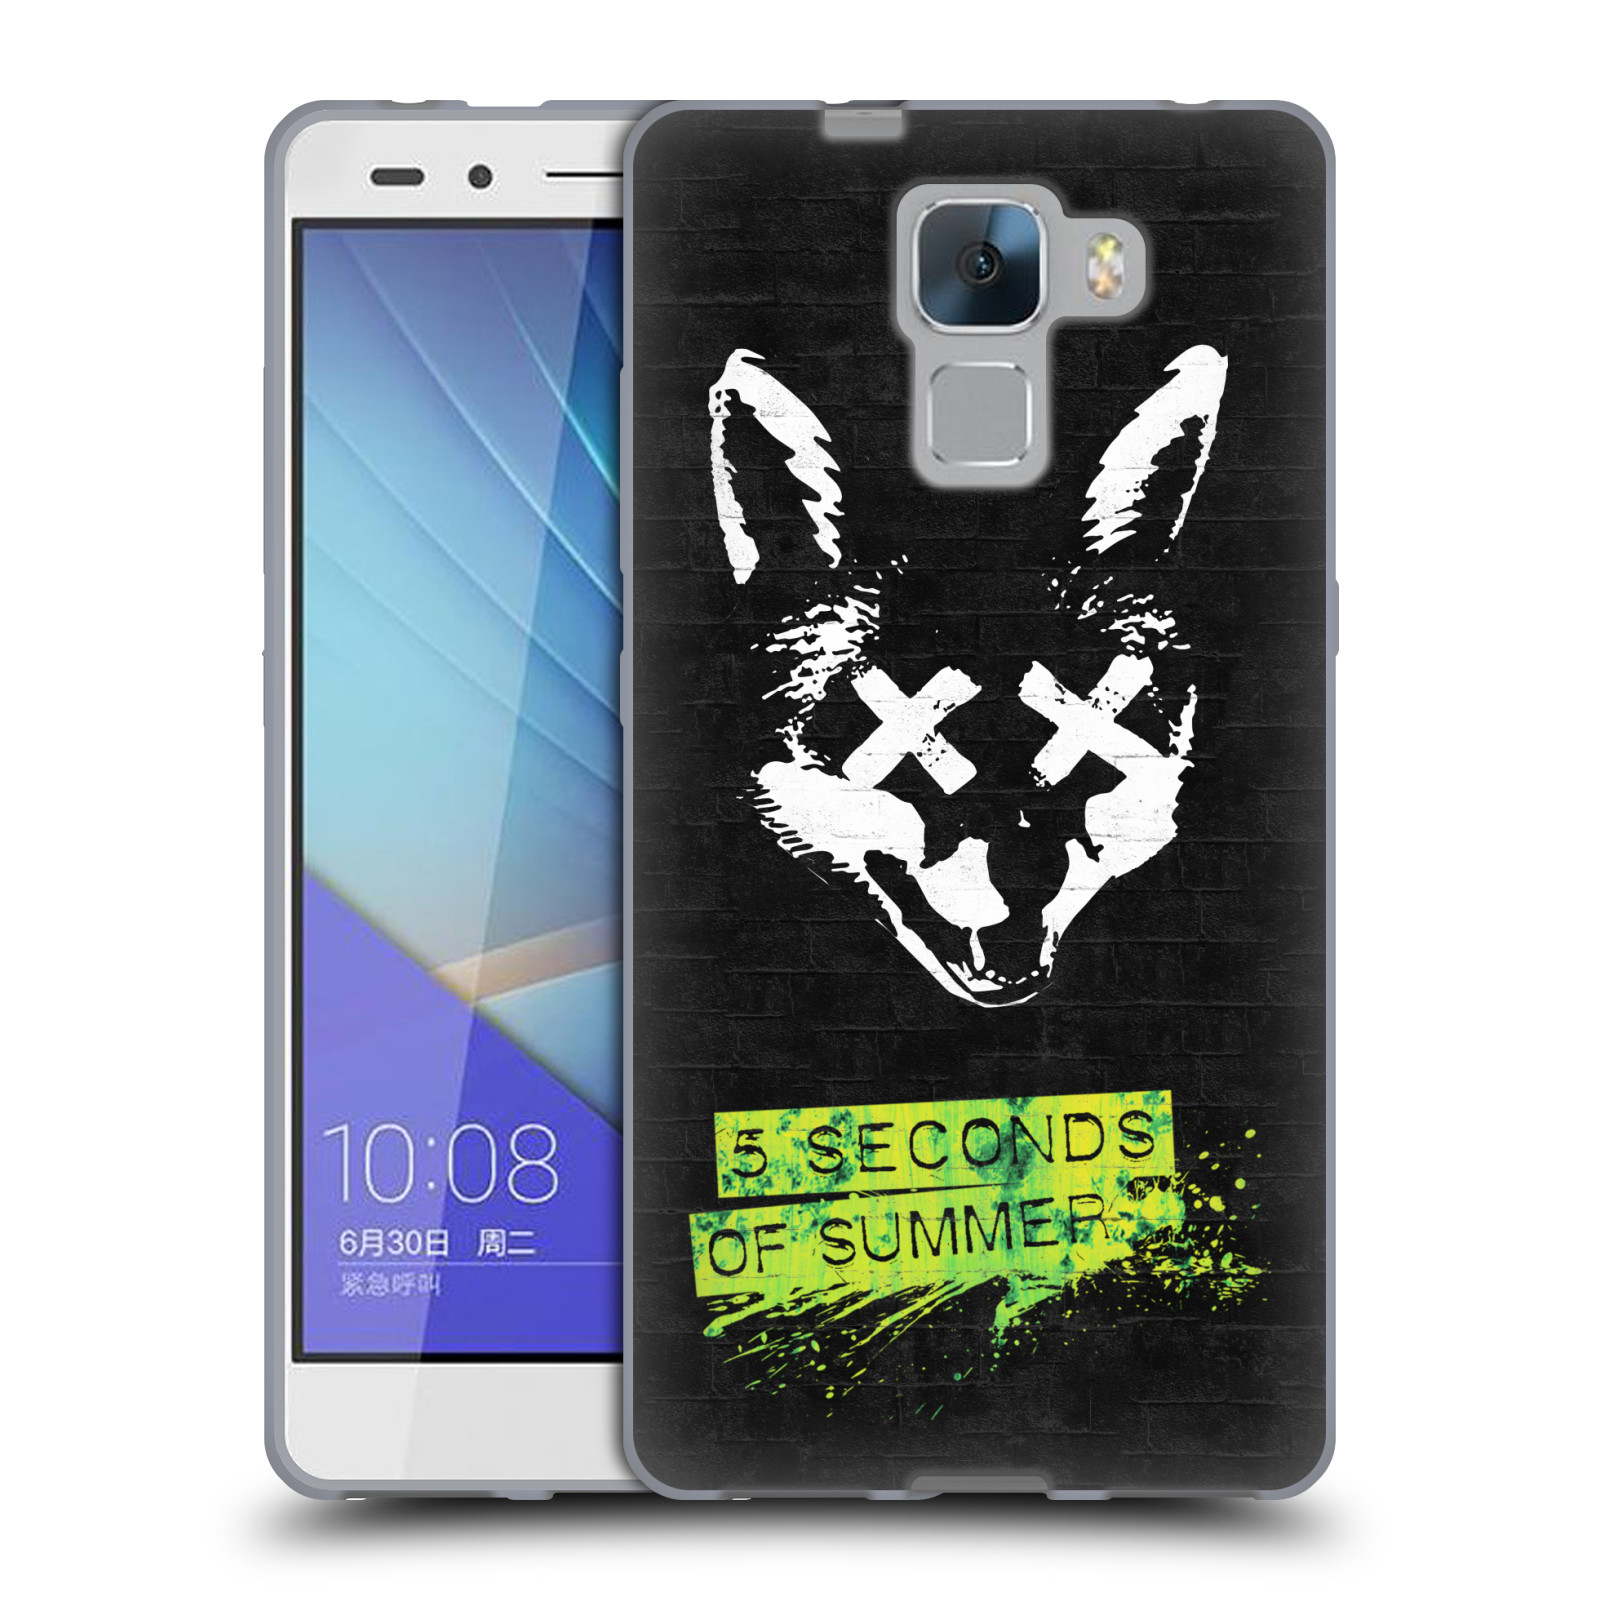 Silikonové pouzdro na mobil Honor 7 HEAD CASE 5 Seconds of Summer - Fox